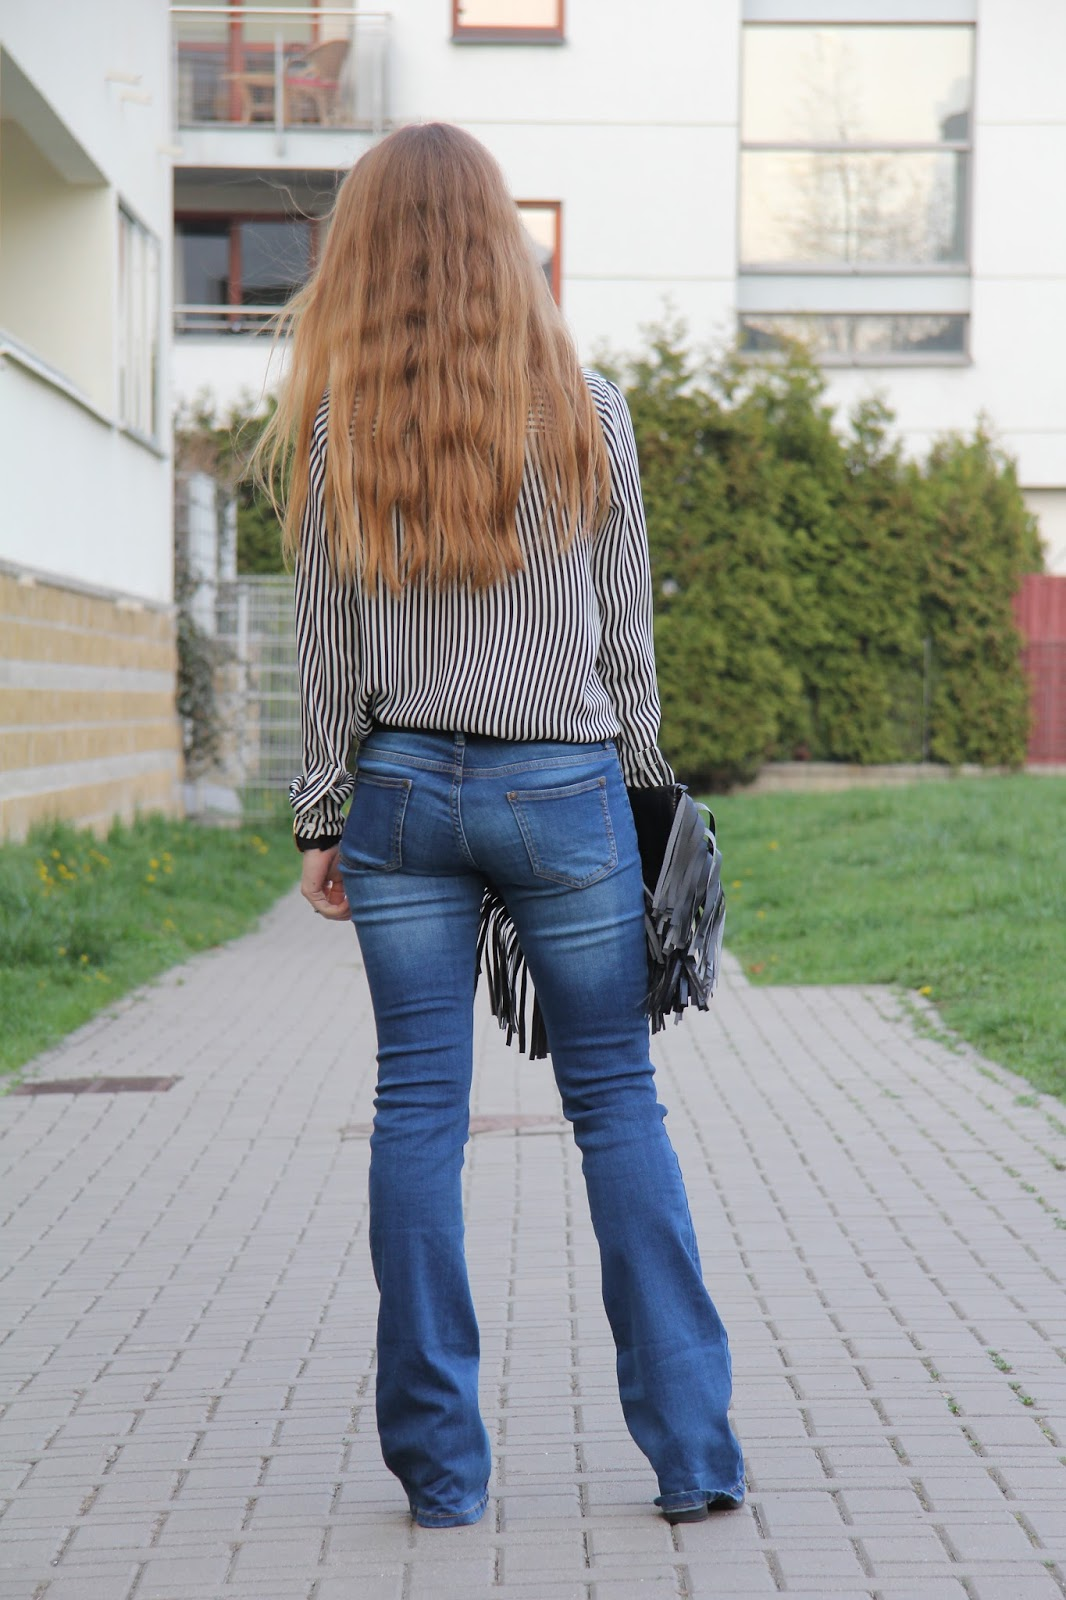 stripes shirt and flared jeans